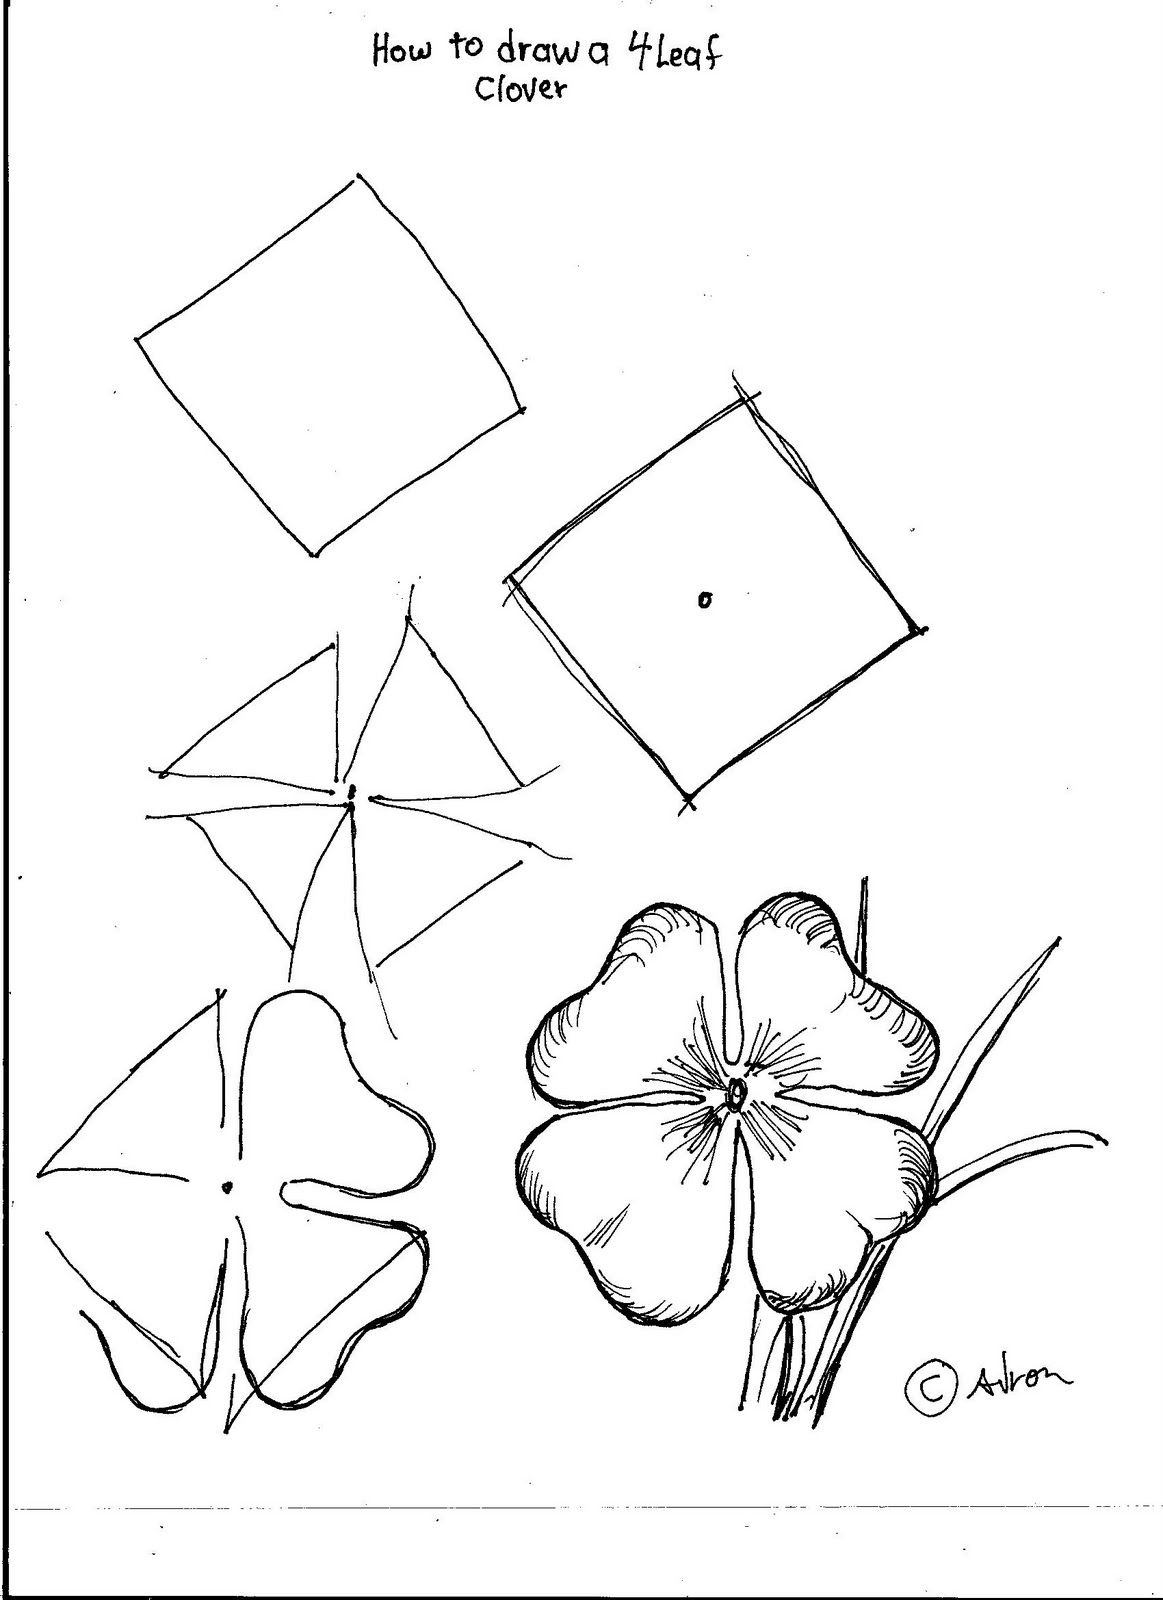 How To Draw Worksheets For The Young Artist How To Draw A Four Leaf Clover For A Young Artist